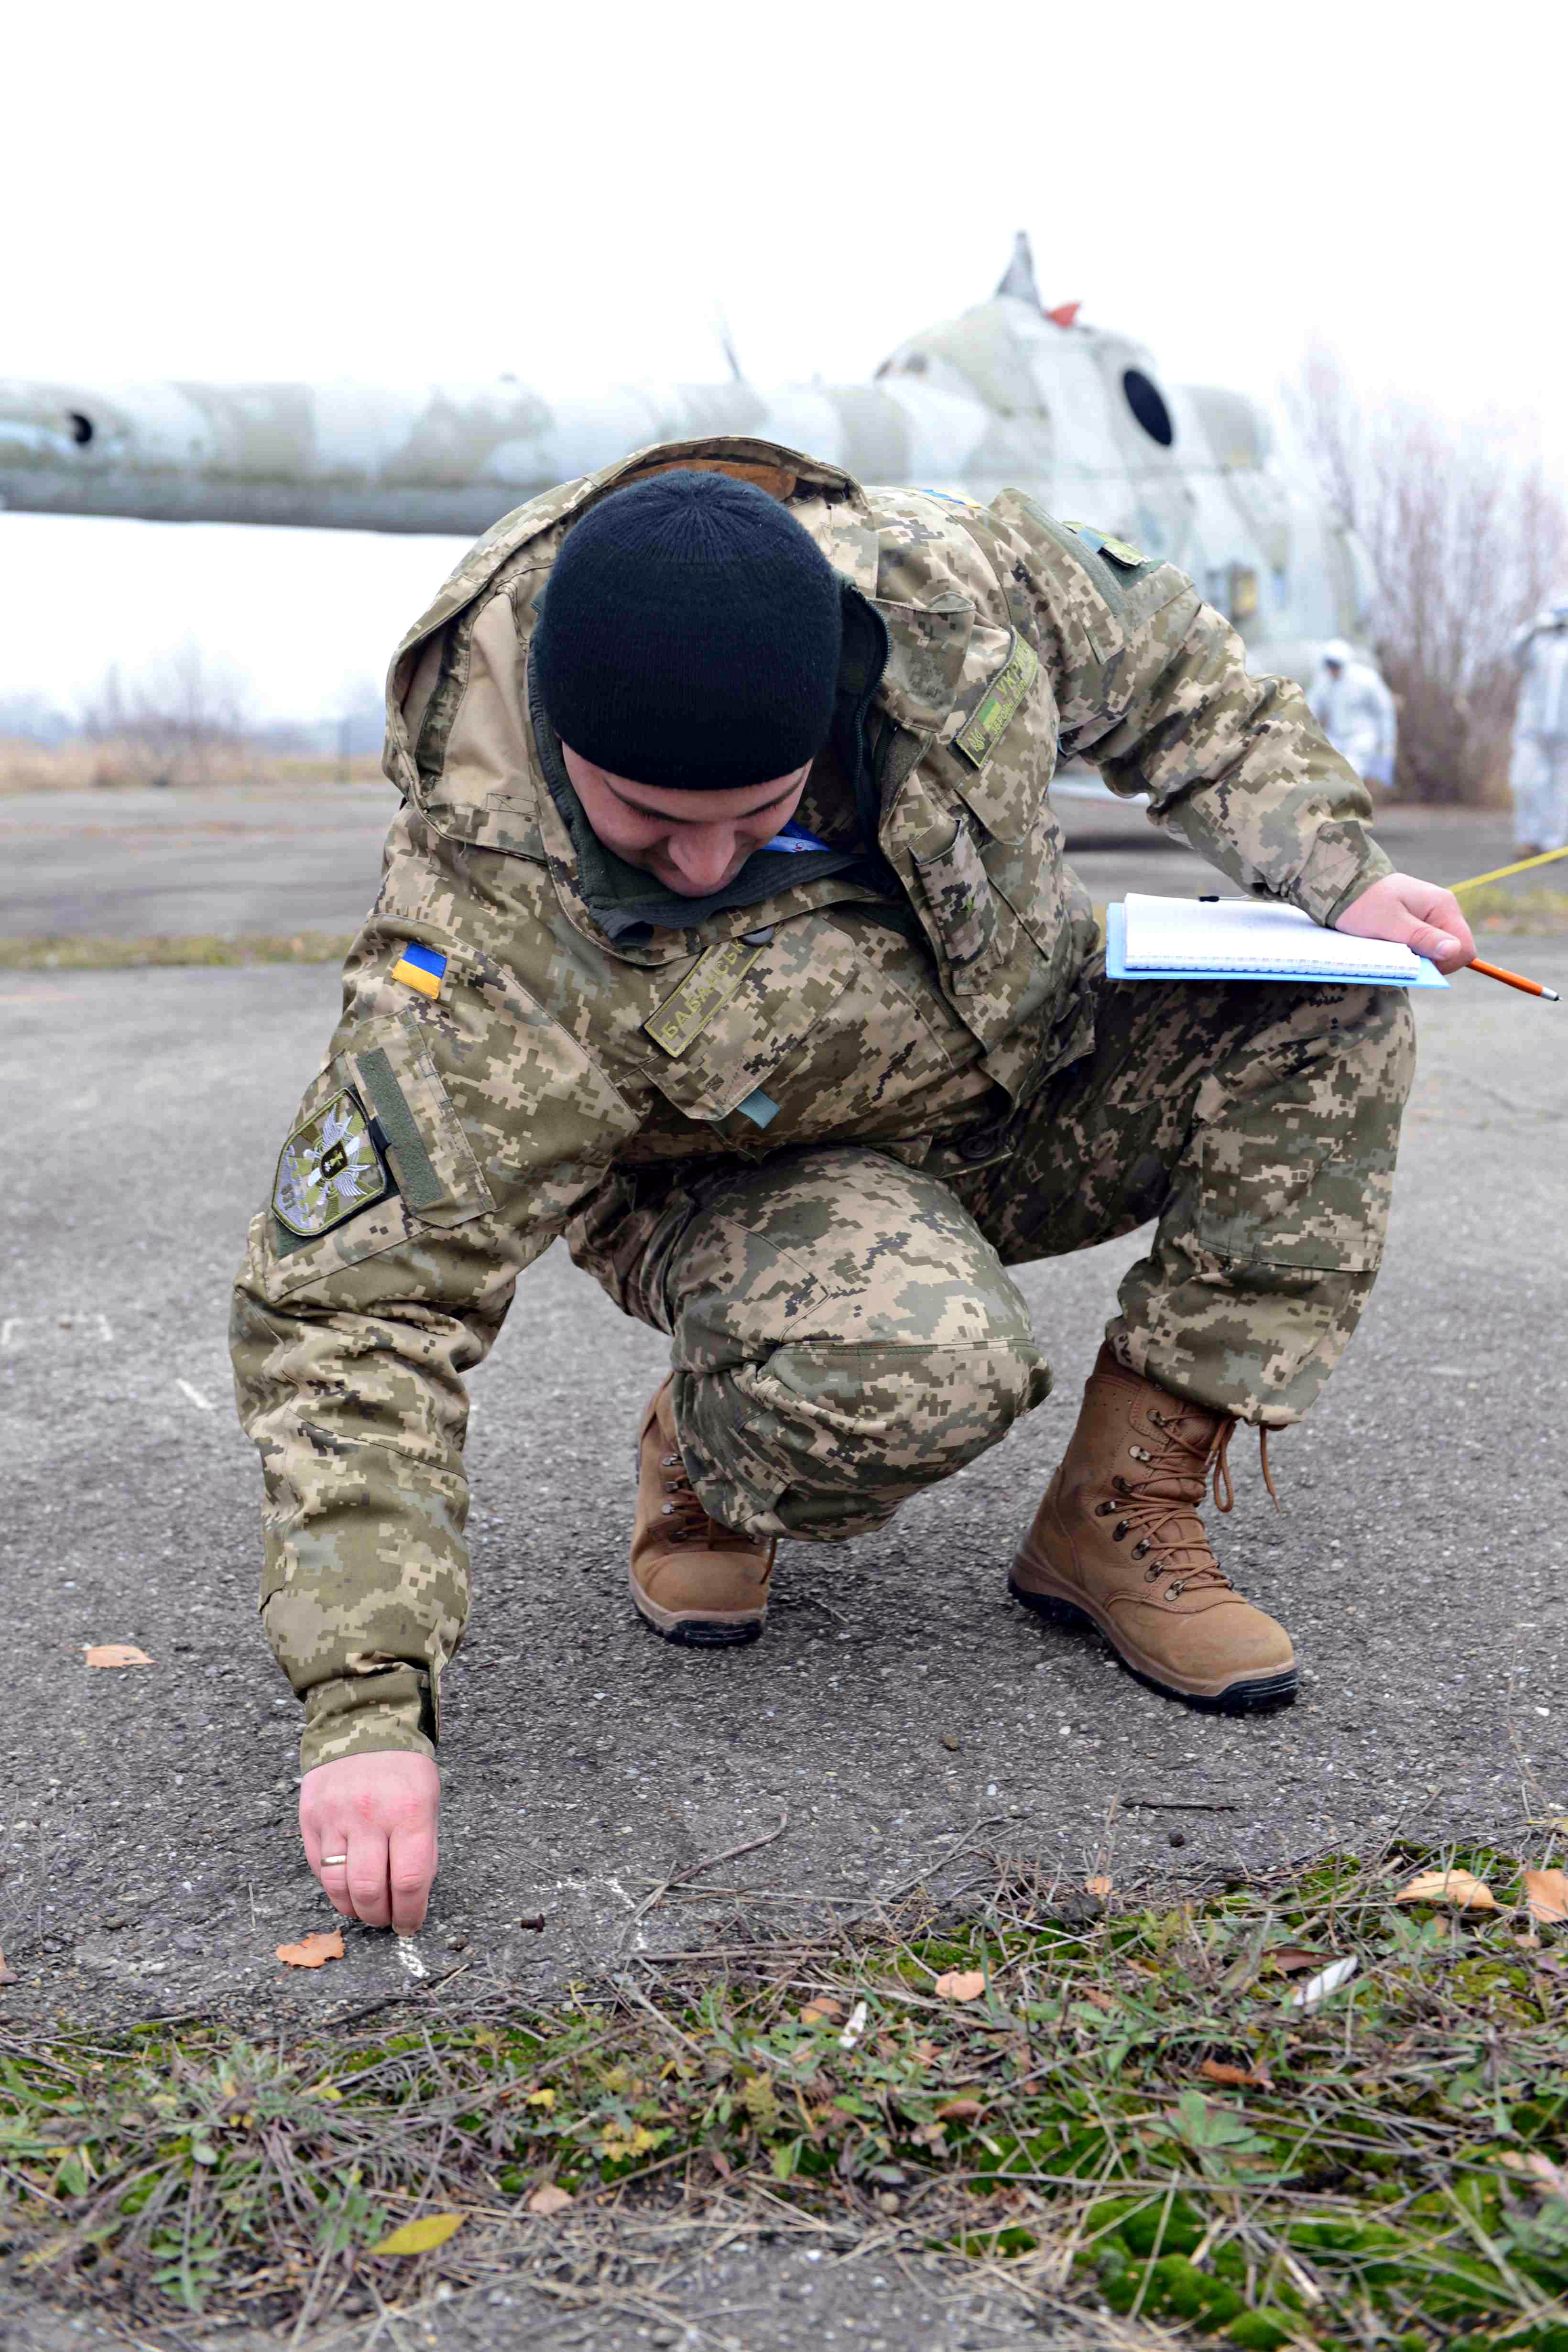 A student from the Flight Safety Course on Operation UNIFIER examines debris while conducting the survey of a simulated helicopter crash site during an exercise at the Lviv Airport military complex in Lviv, Ukraine, on November 22, 2016. (Photo : Joint Task Force – Ukraine)